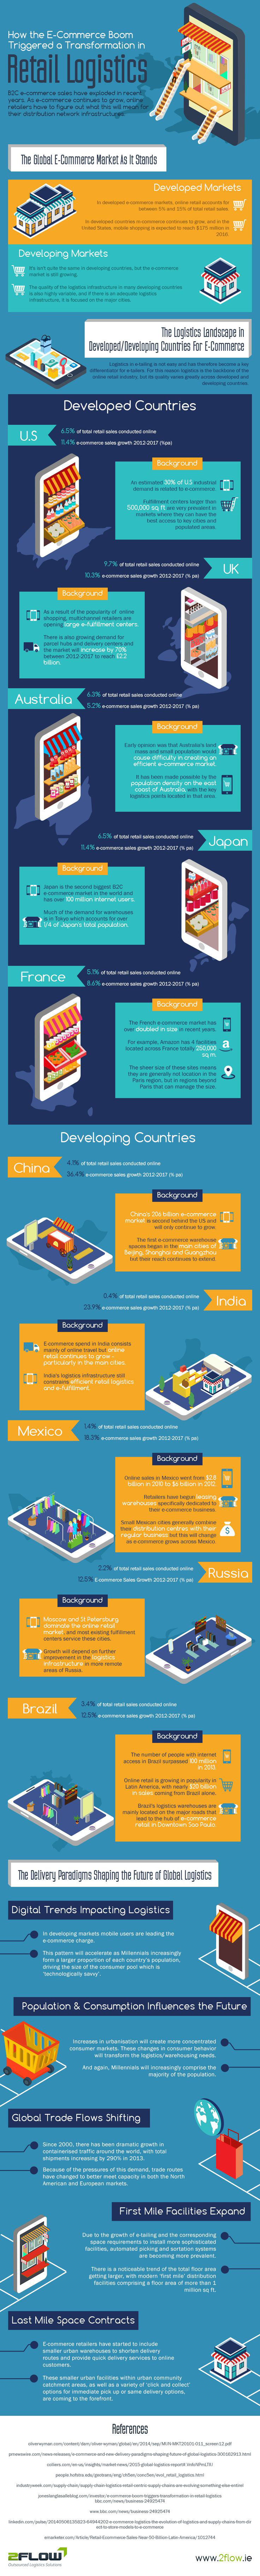 retail-logistics-infographic-ecommerce